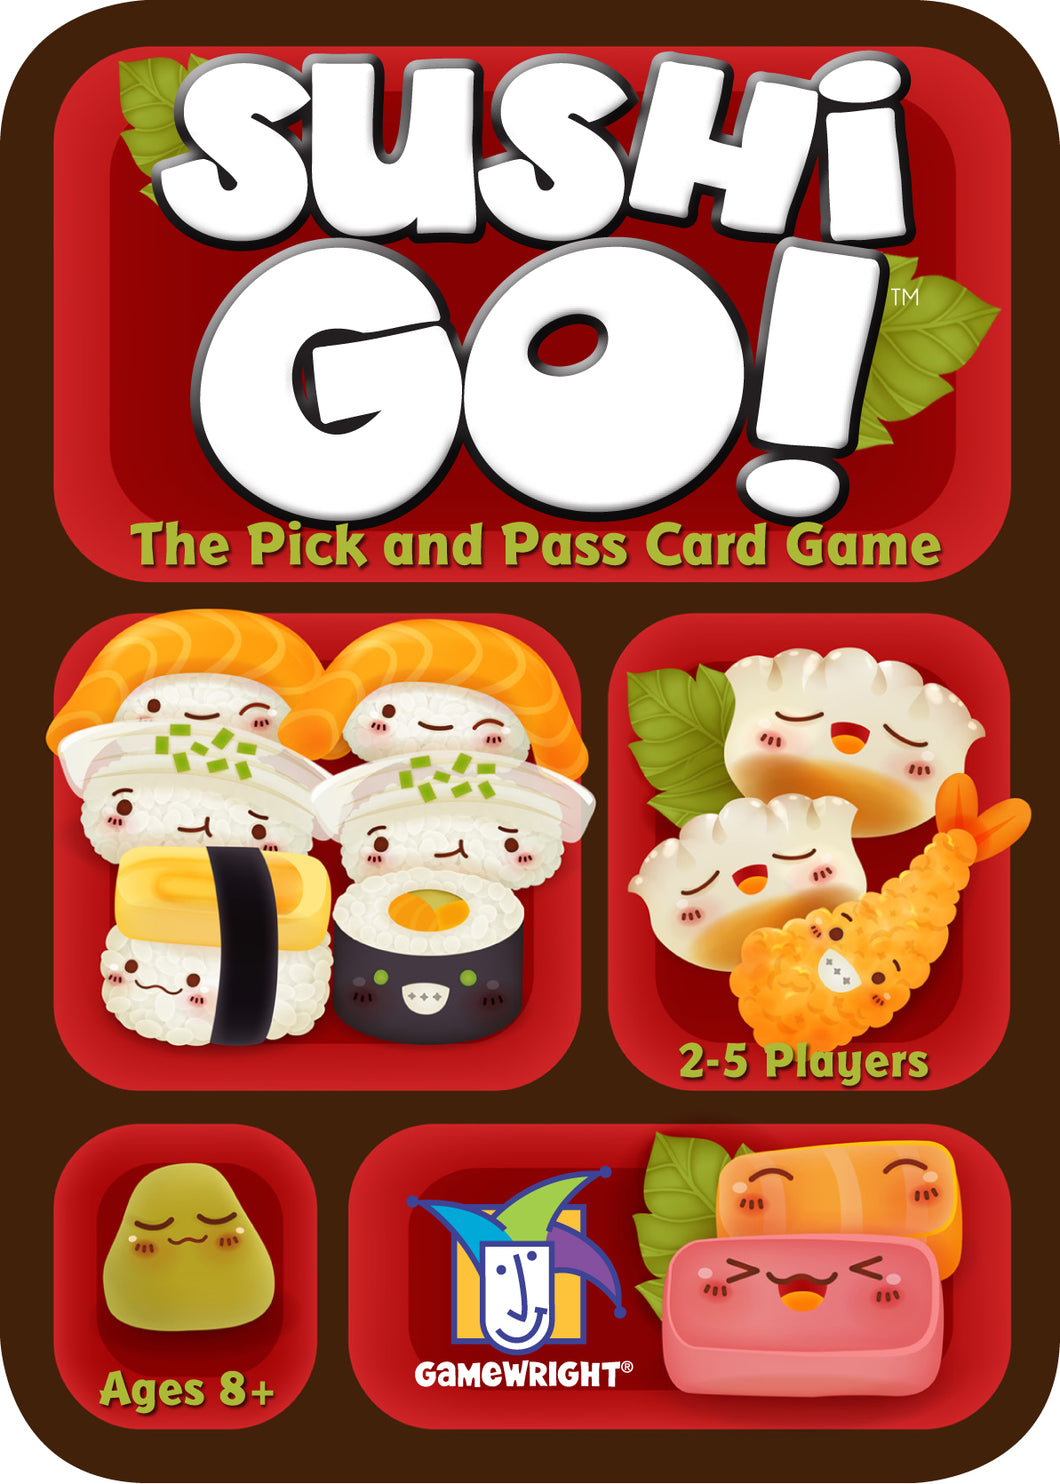 Sushi Go! card game box cover